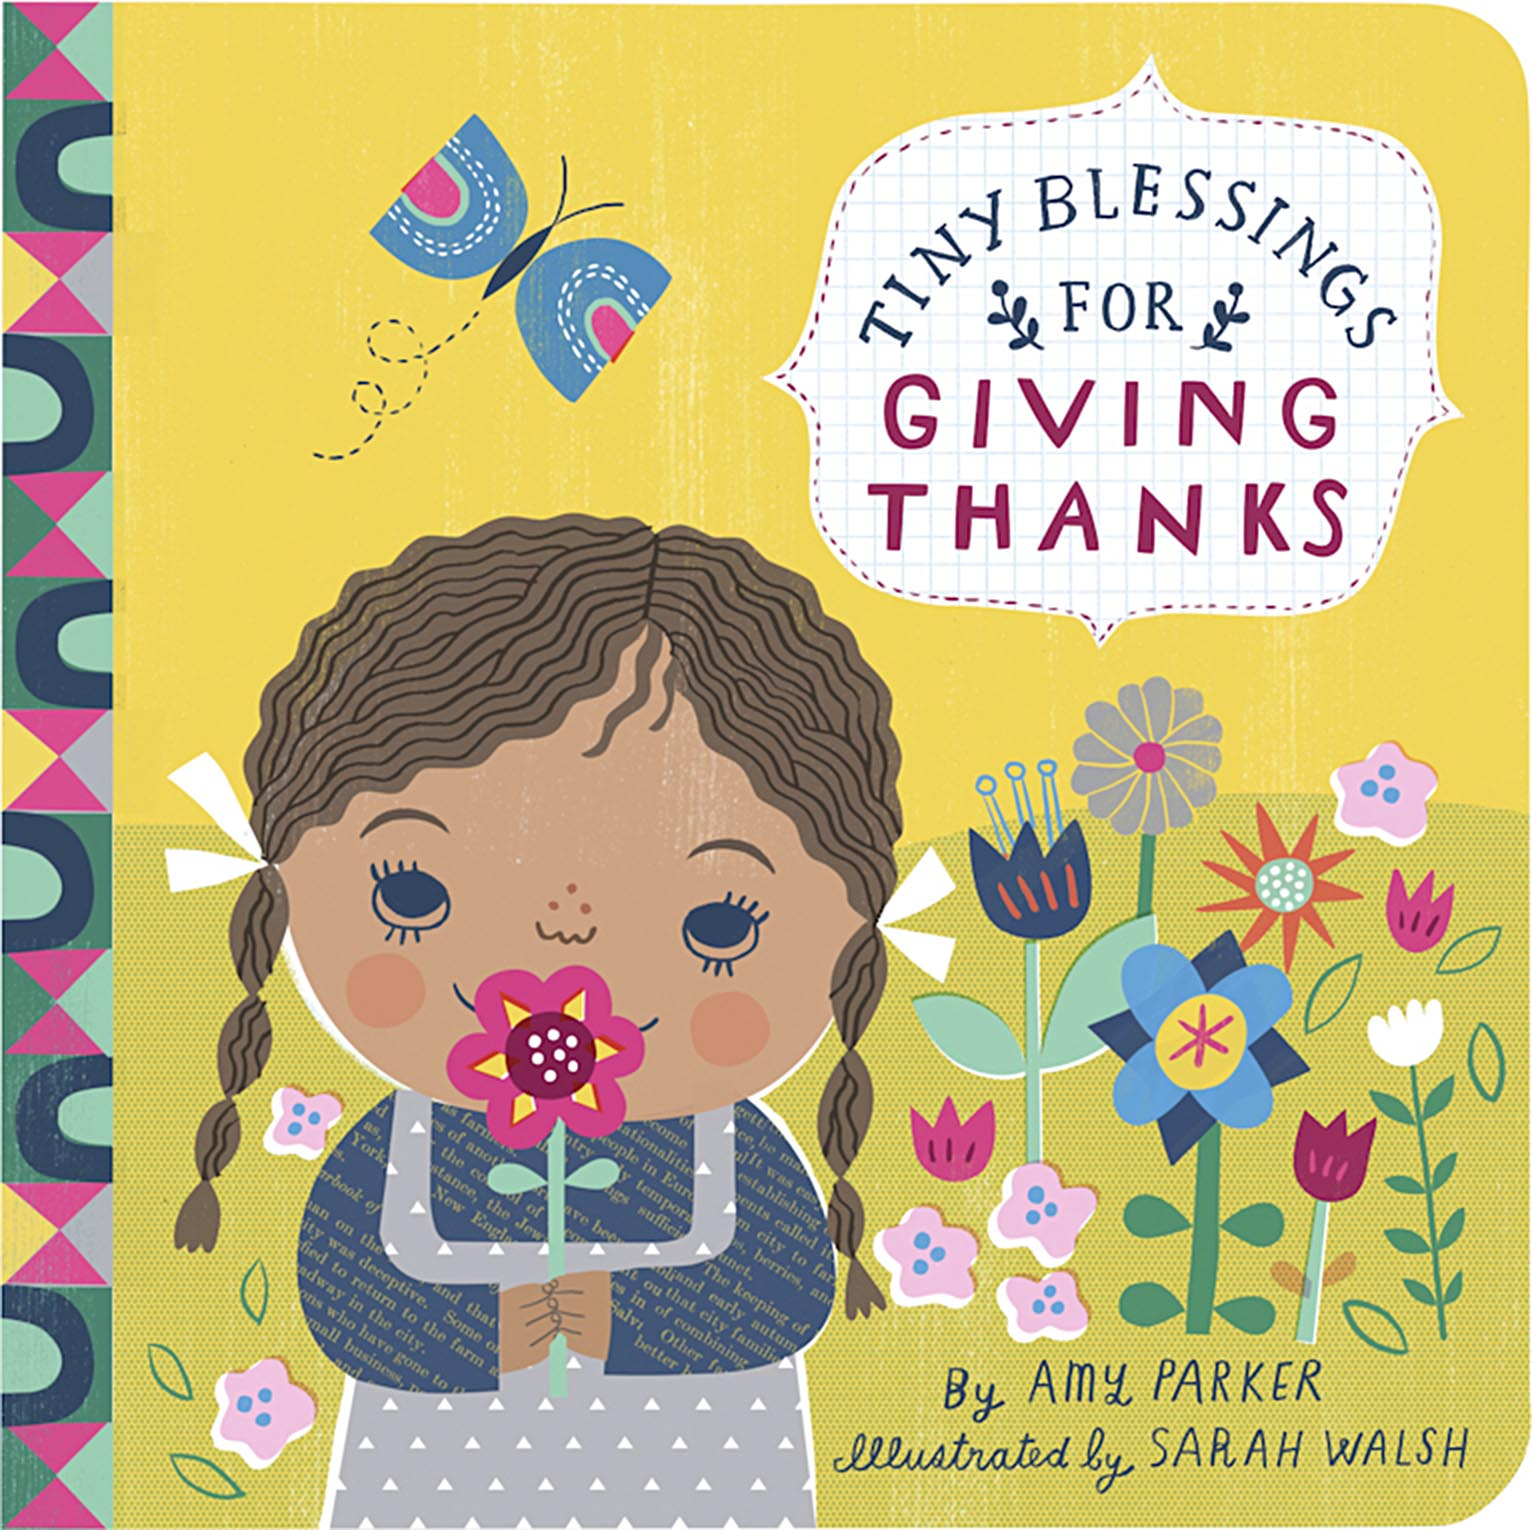 Tiny Blessings: For Giving Thanks